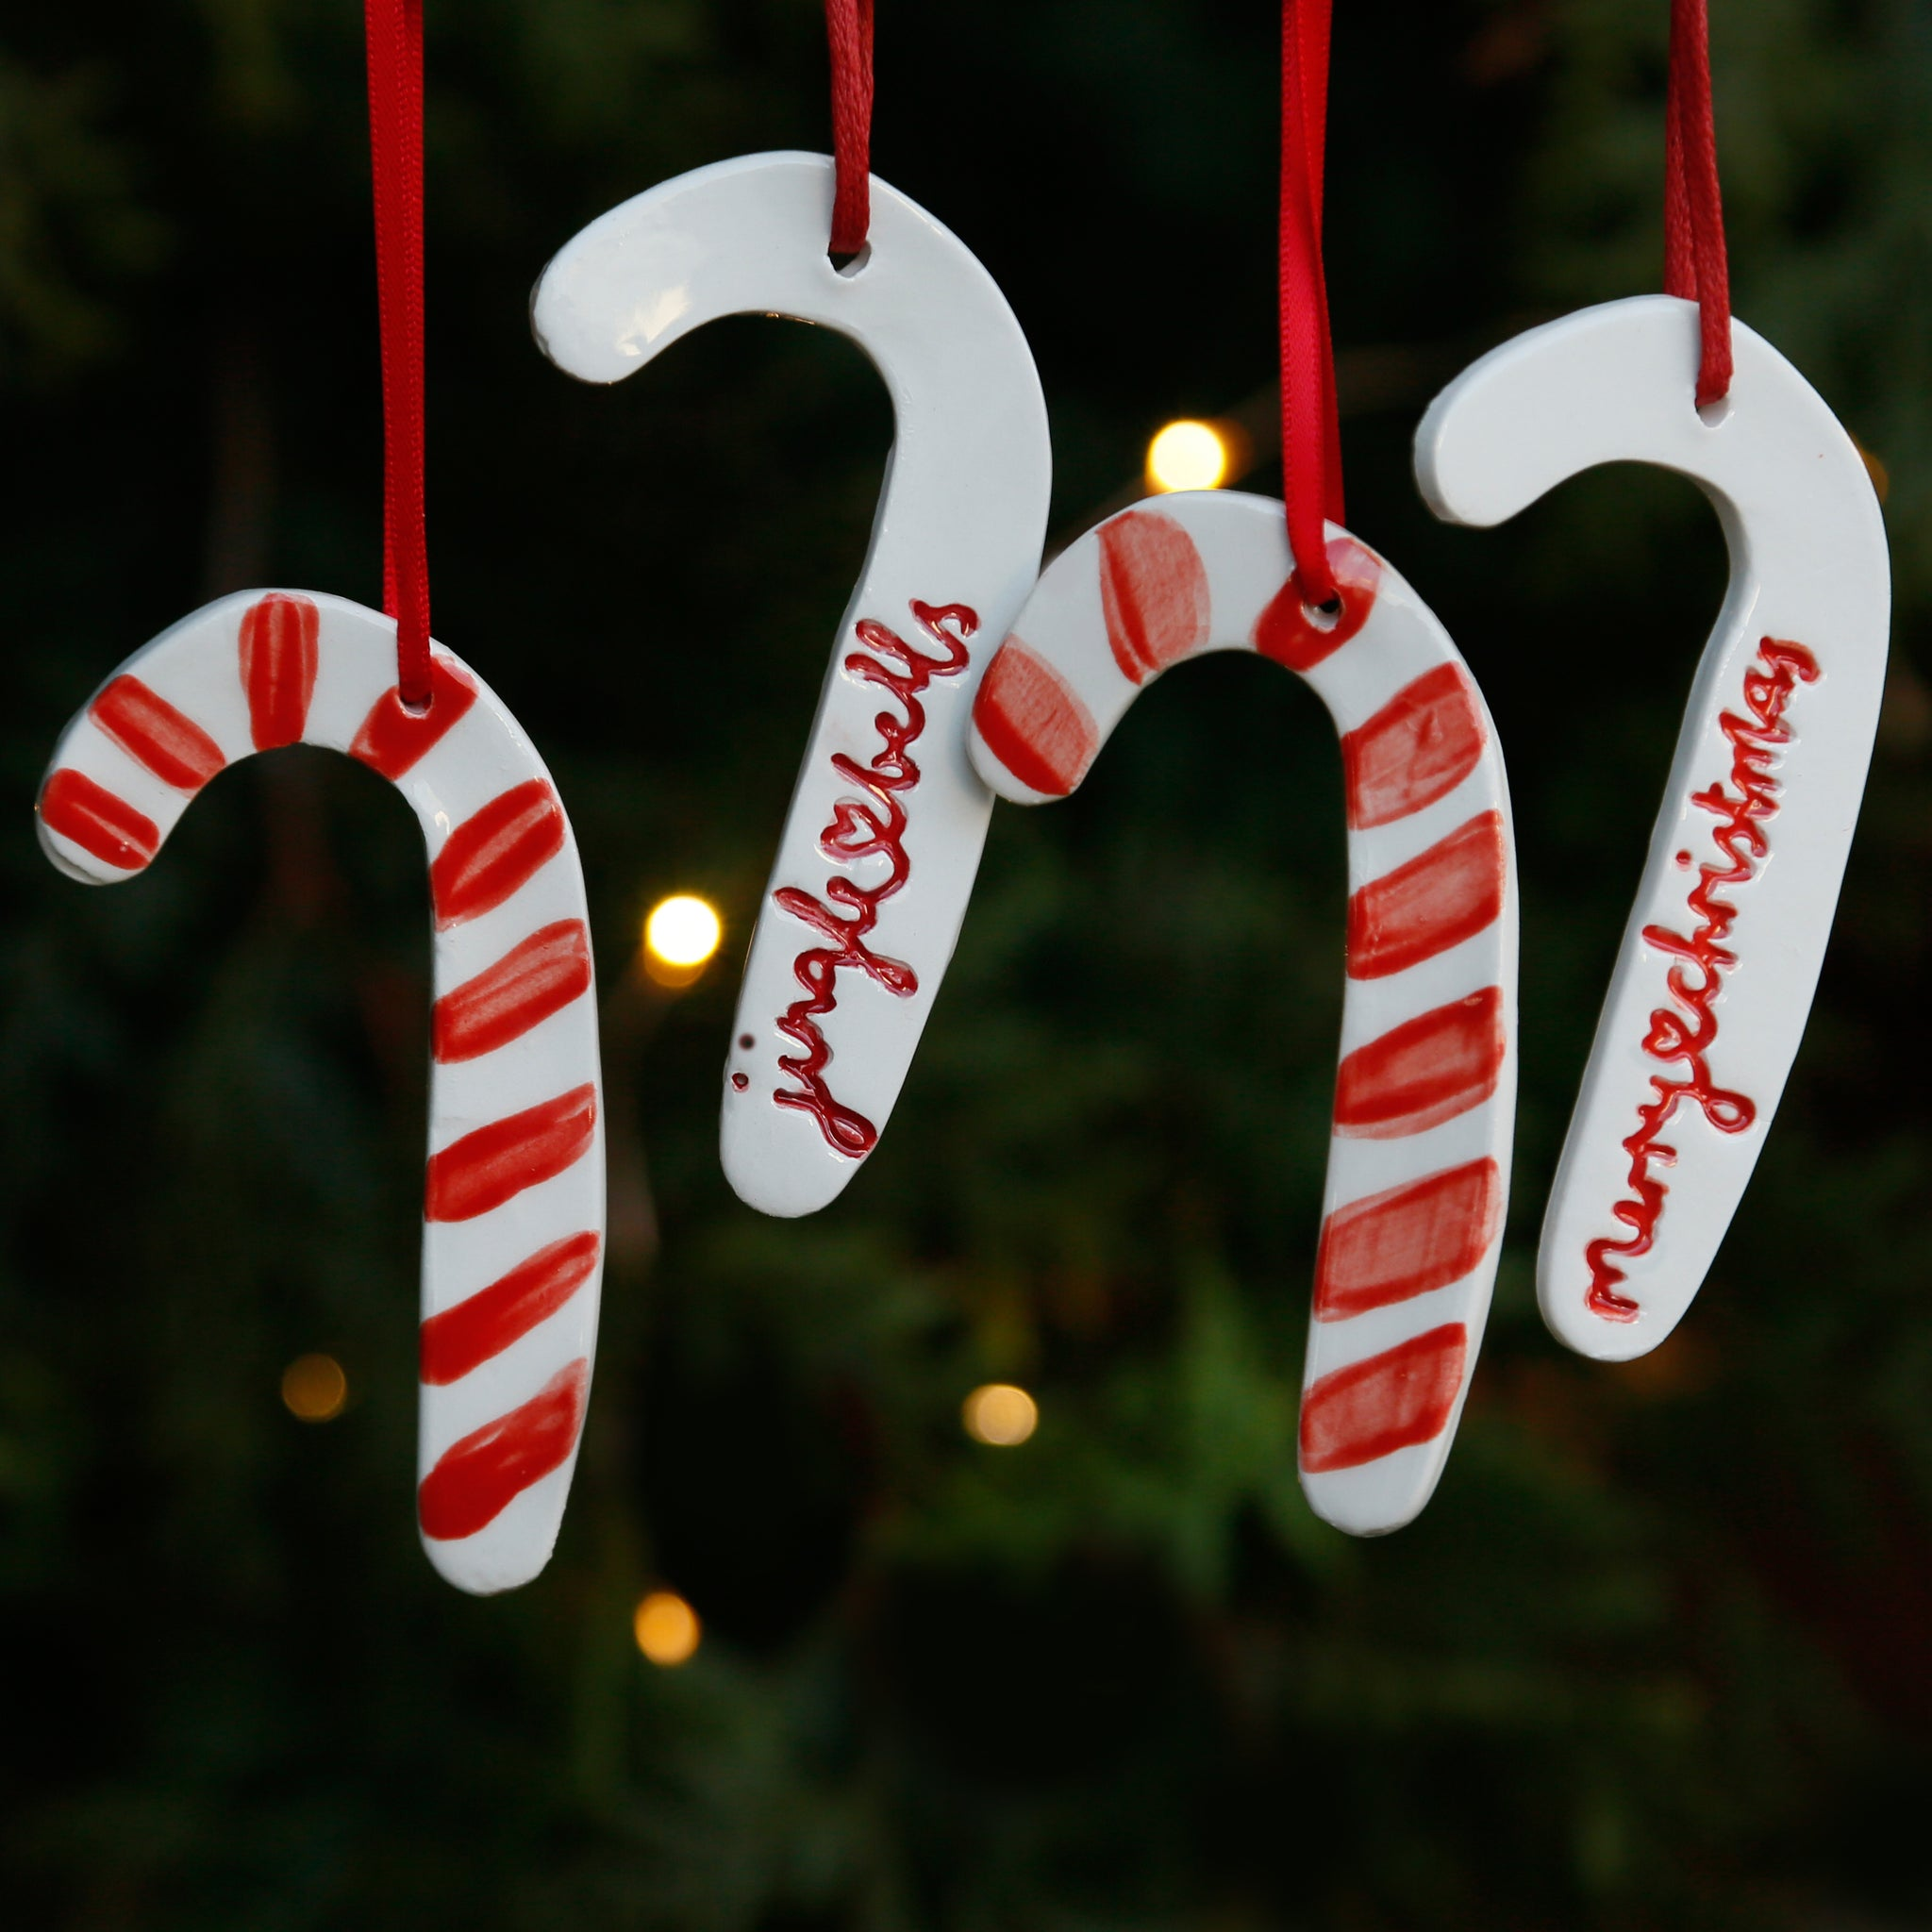 Set of 4 Candy Cane Ornaments with Hand Lettering Style Christmas Lyrics